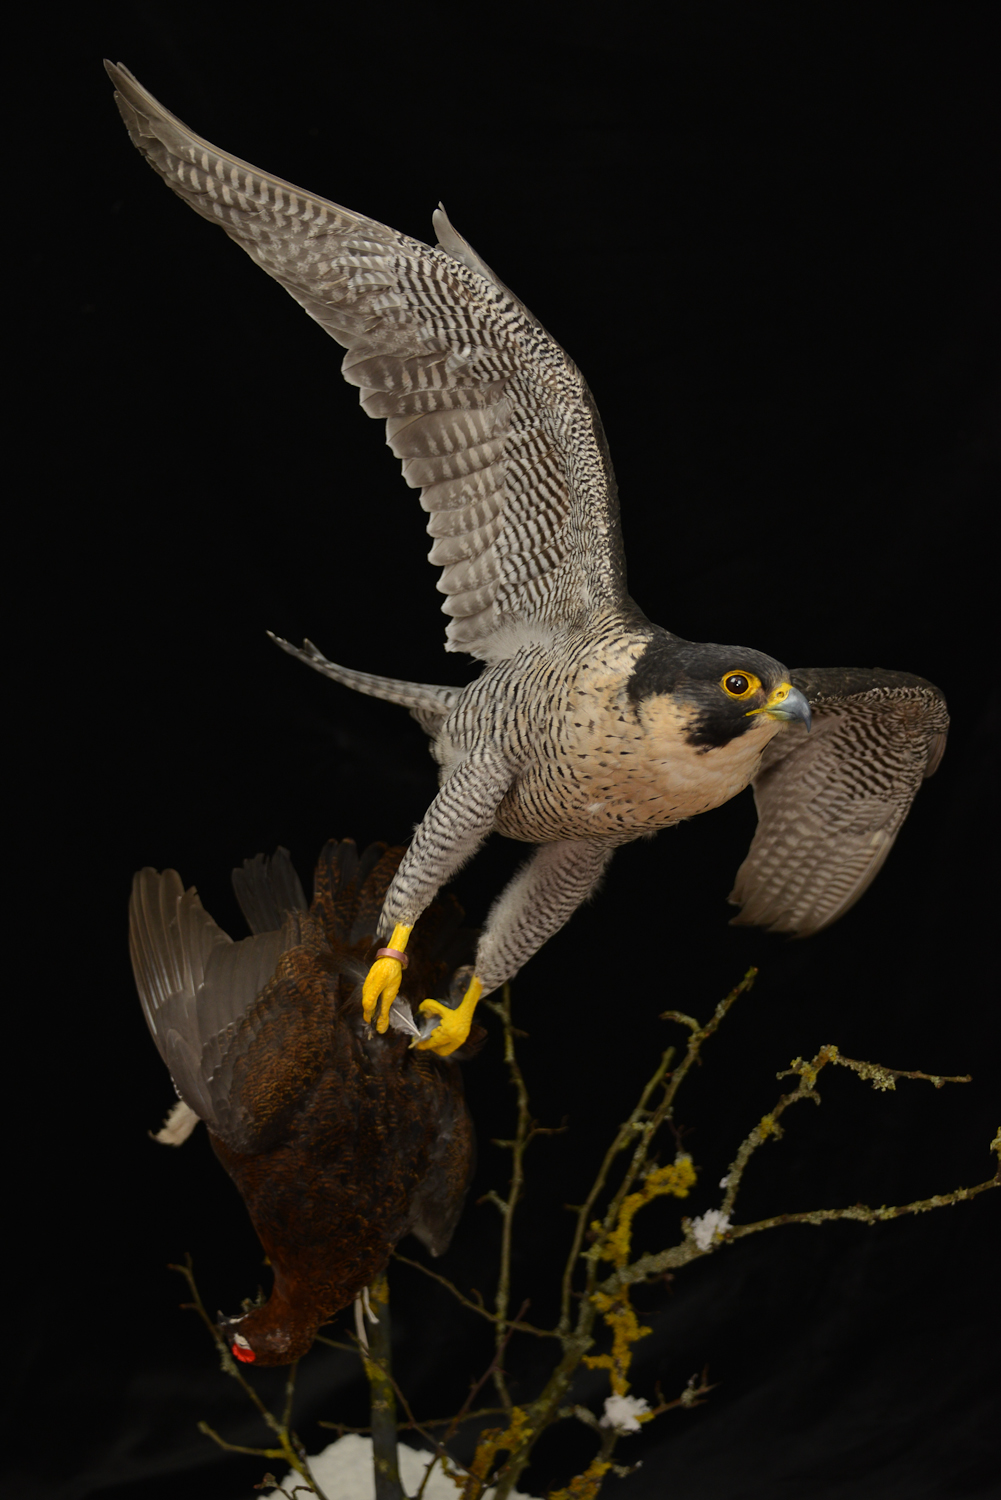 Taxidermy Peregrine Falcon falco peregrinus catching Grouse 5